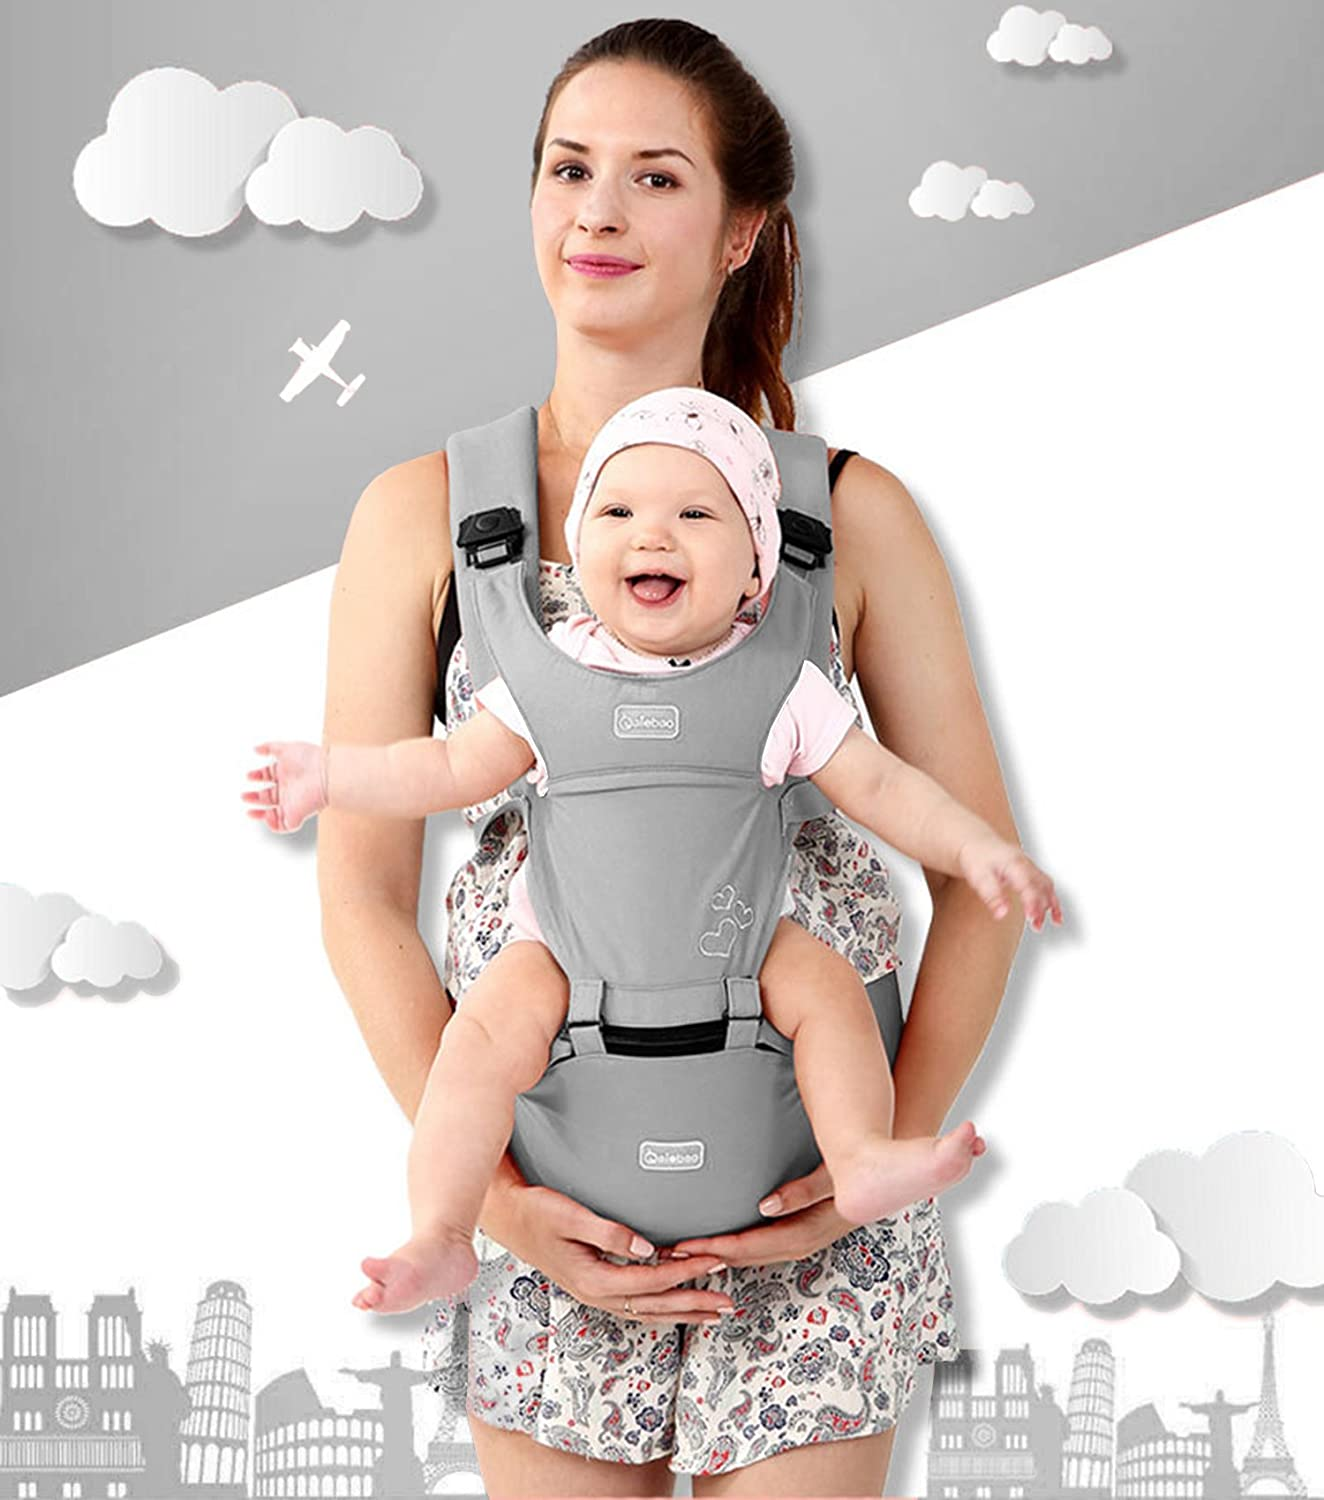 360° Ergonomic Baby & Child Carrier Hip Seat All Carry Positions for Infant Toddler and newborn Soft Structured Carrying Sling bag Cotton Carries children from 3 to 36 months (Gray) hongchan